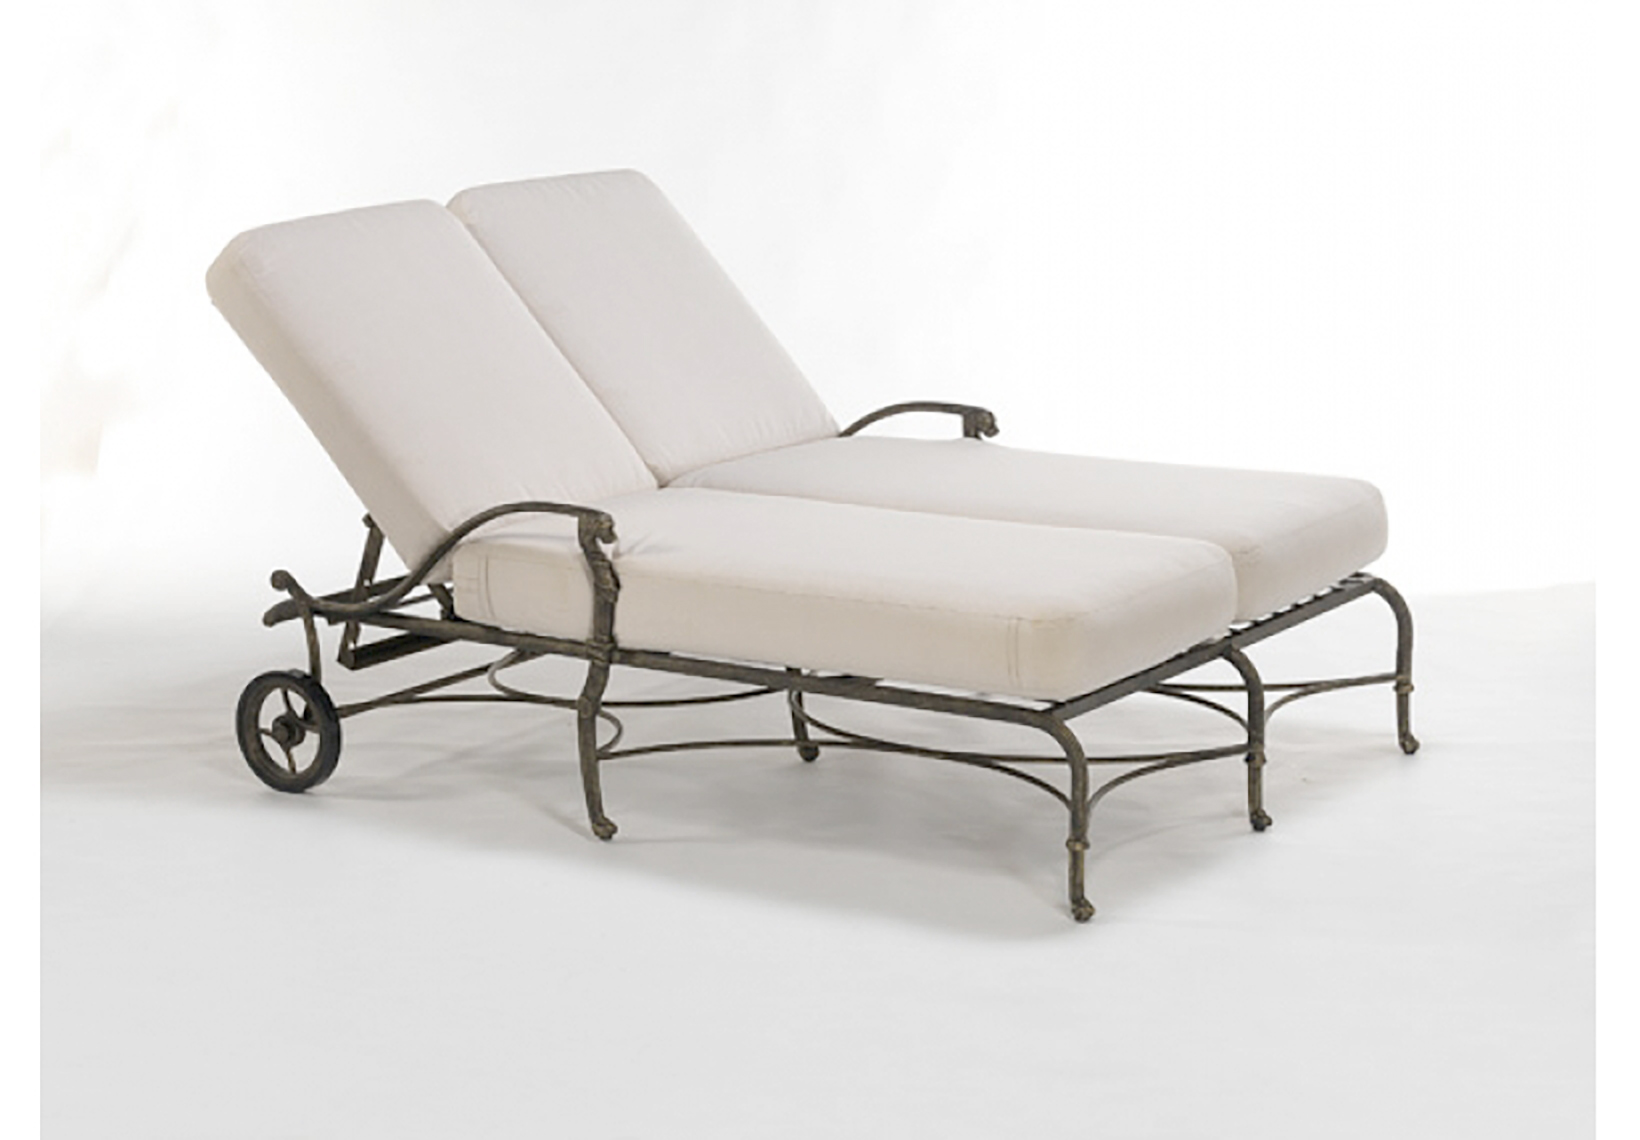 Luxor Double Lounger